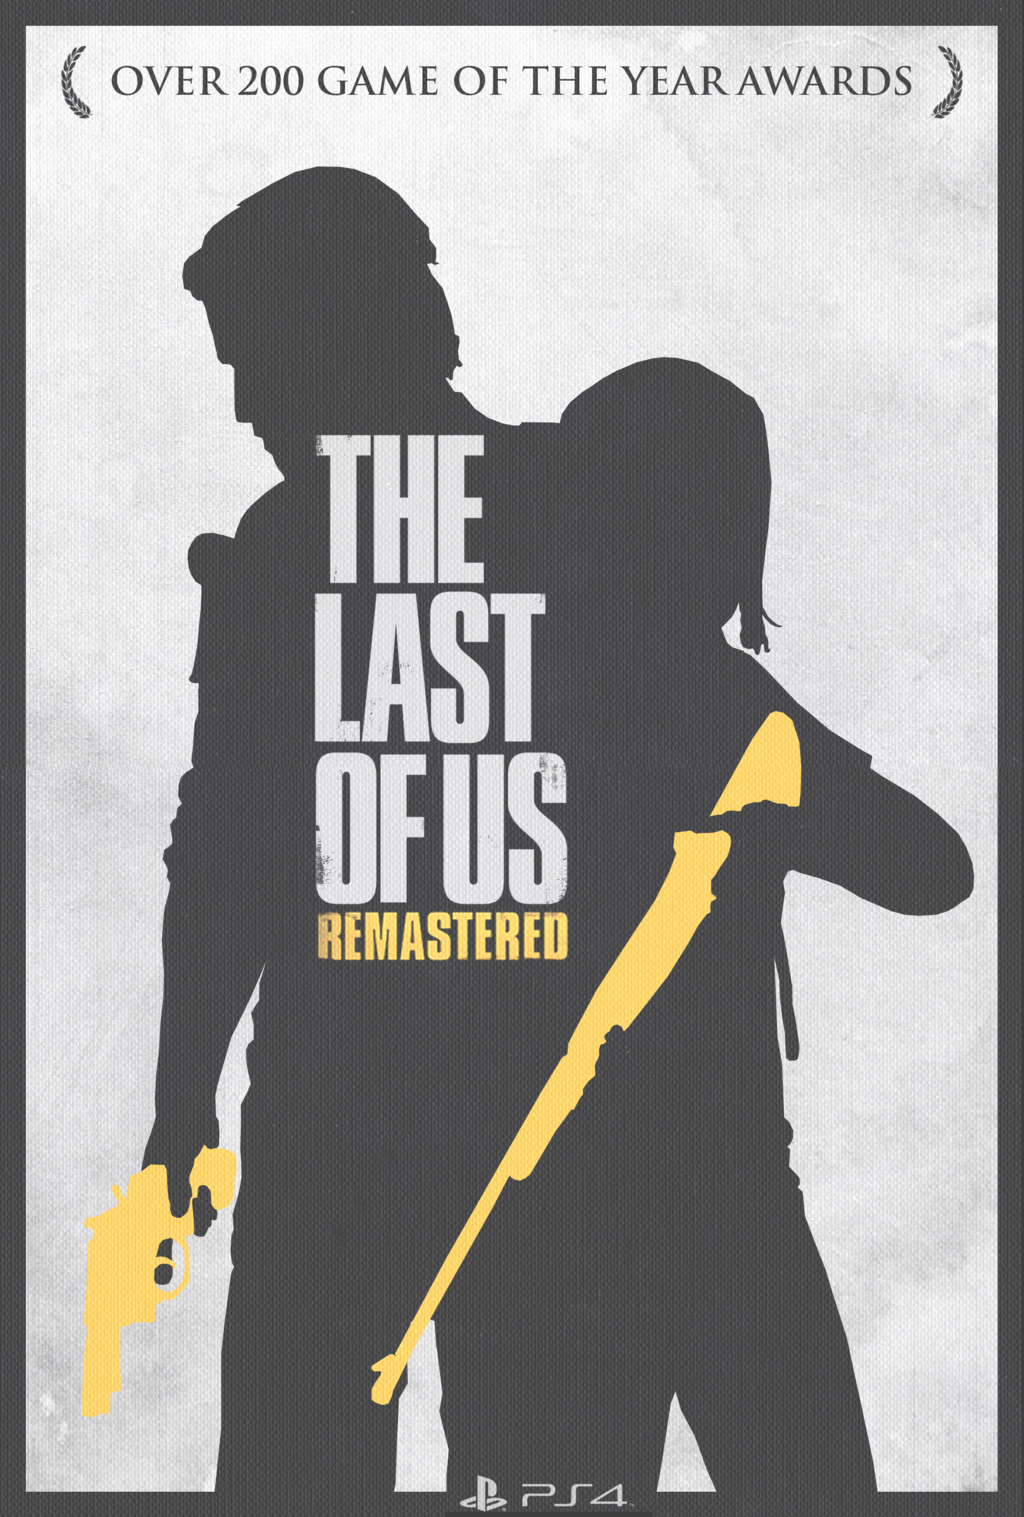 Logogami Shop Redbubble In 2021 The Lest Of Us The Division Cosplay The Last Of Us